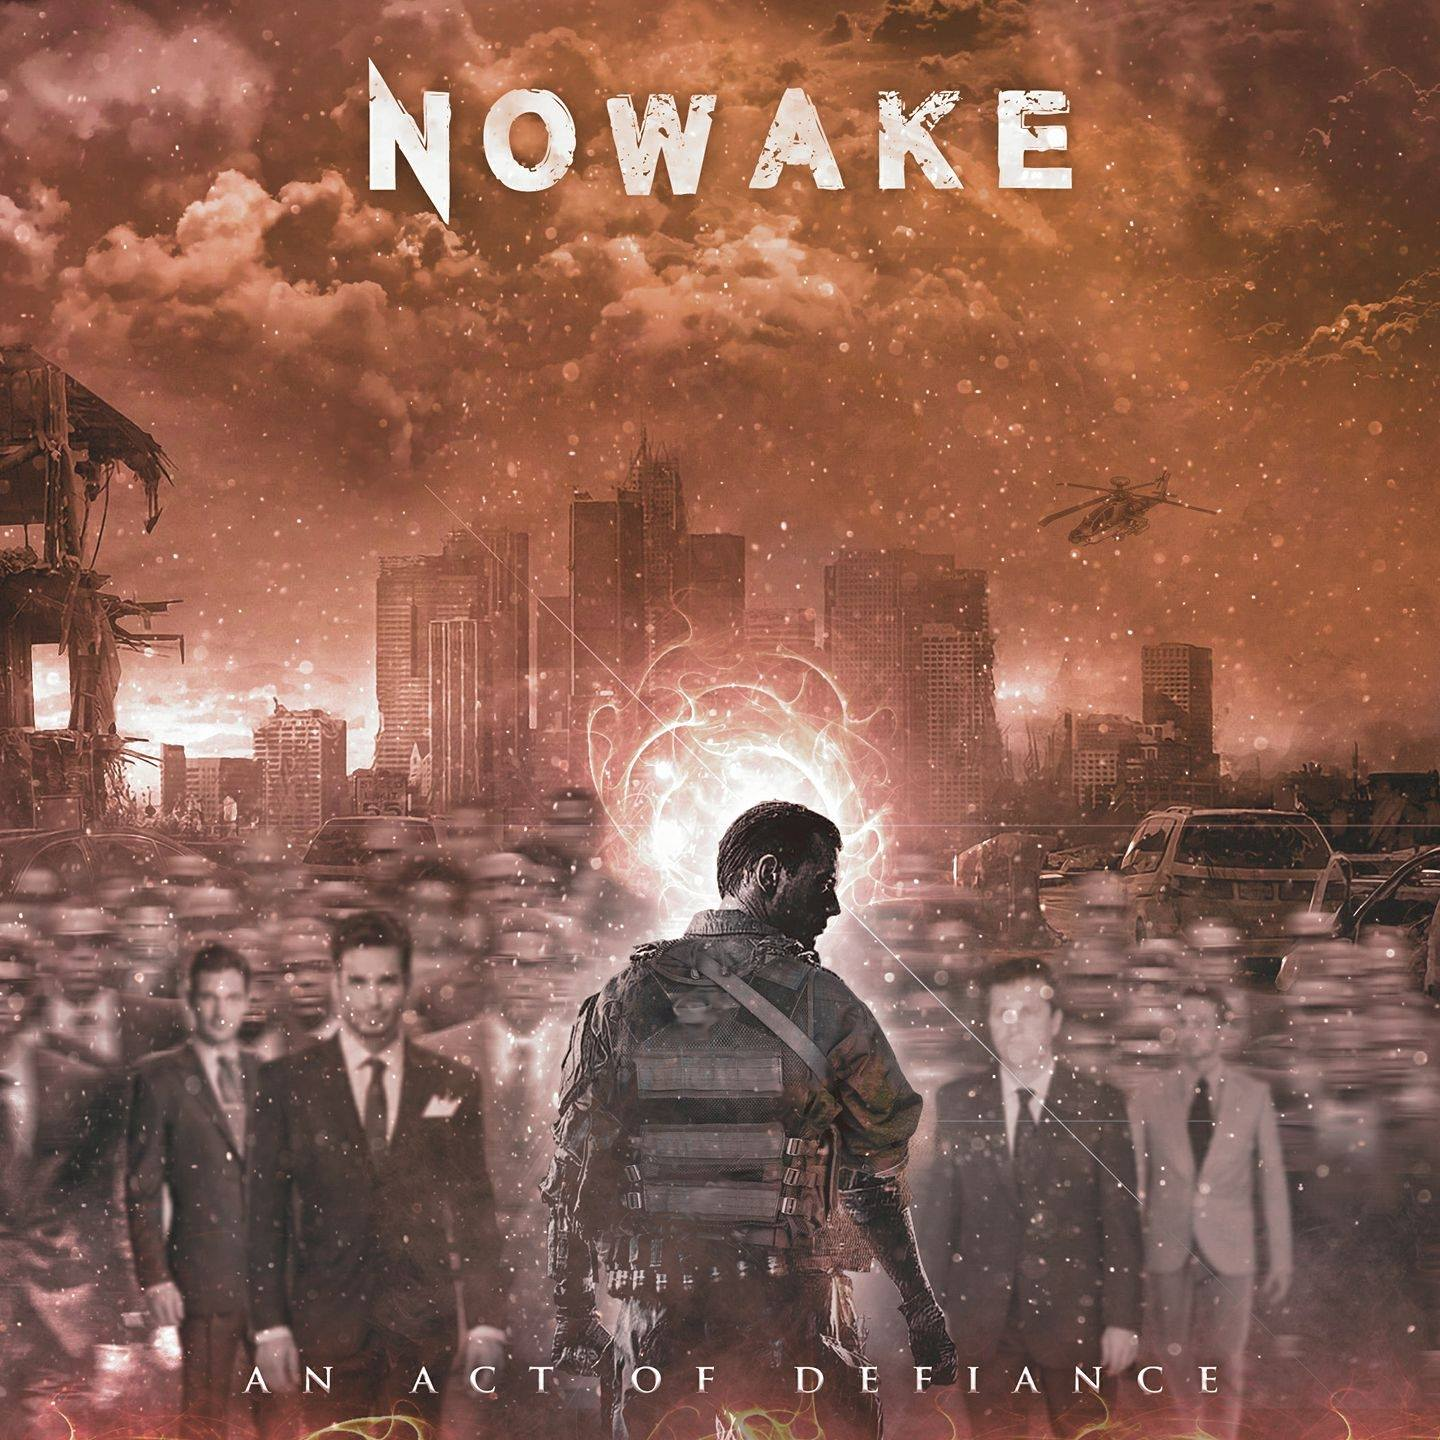 """ALBUM REVIEW: """"An Act of Defiance"""" hits its stride late for NOWAKE"""